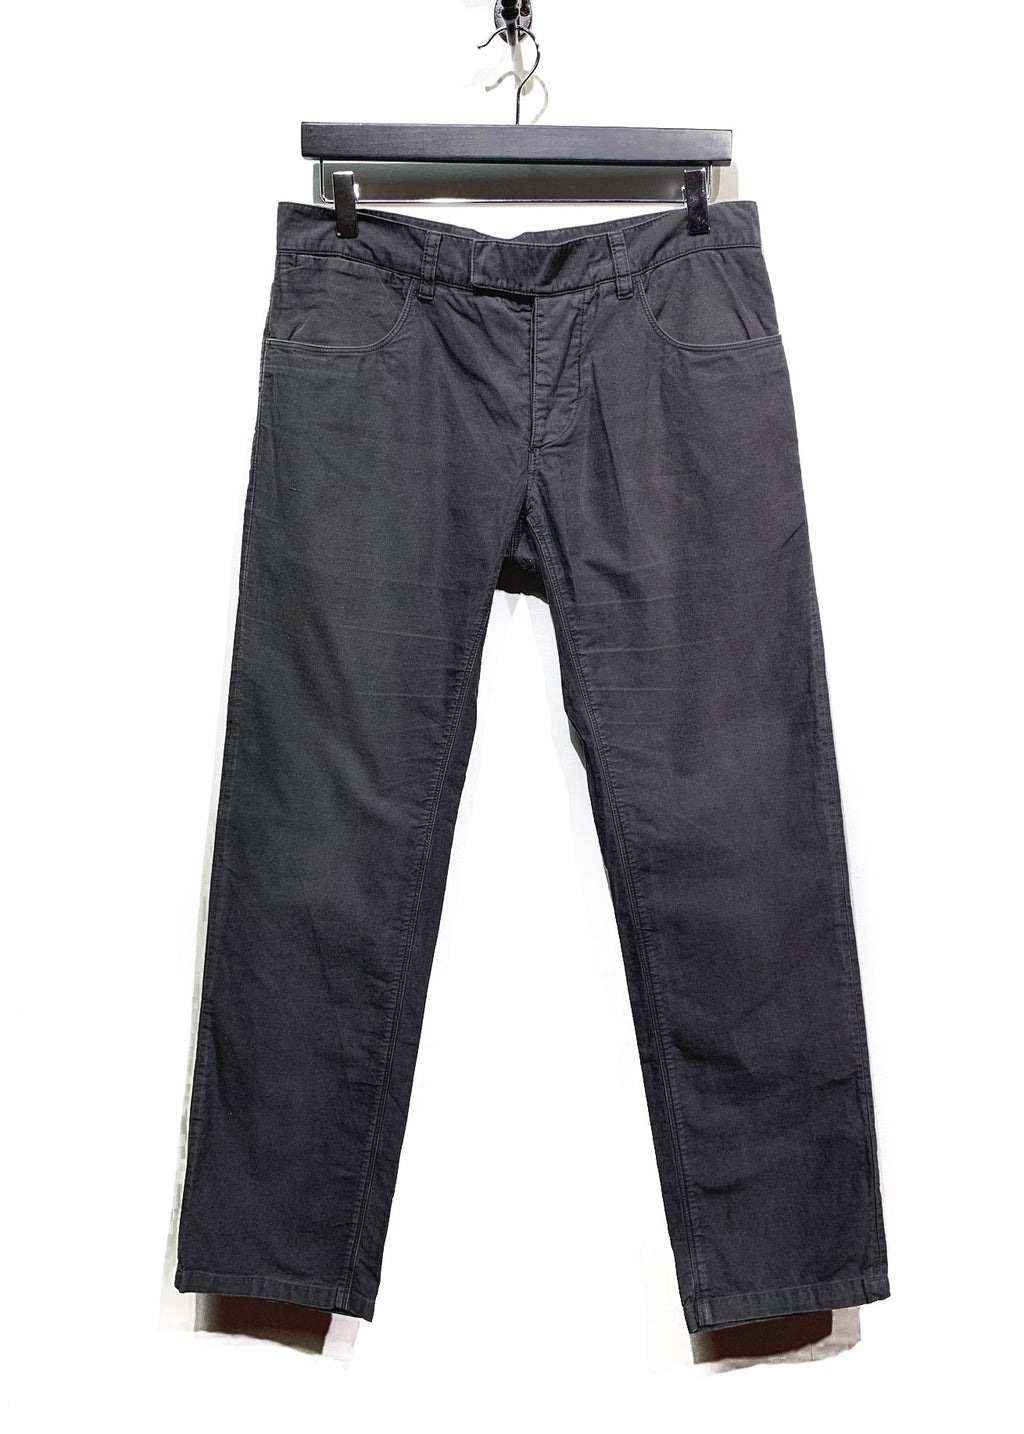 Prada Linea Rossa Grey Brushed Cotton Chino Trousers